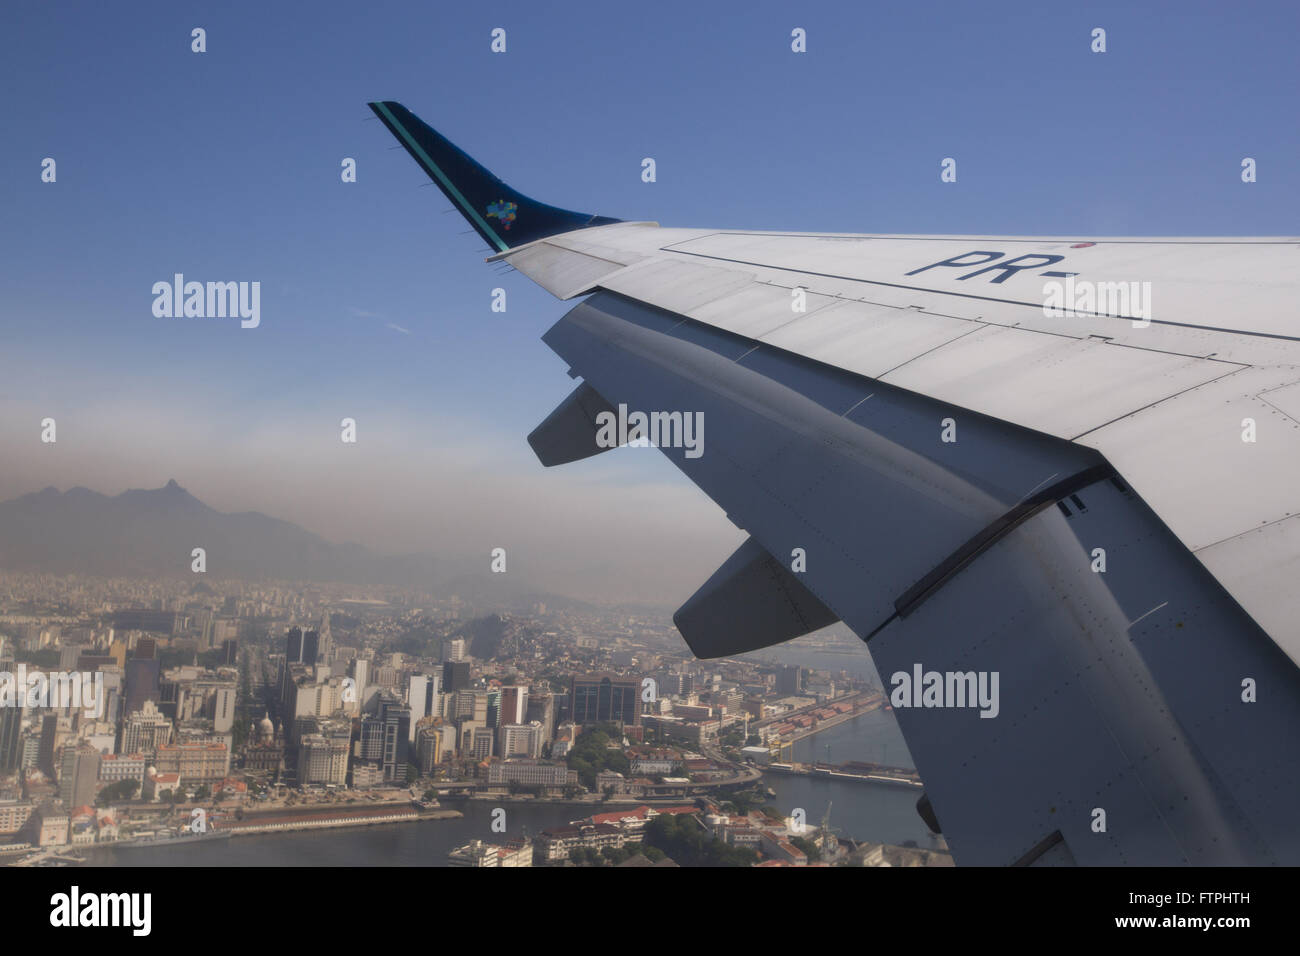 Aircraft wing detail during takeoff at Santos Dumont Airport - Stock Image